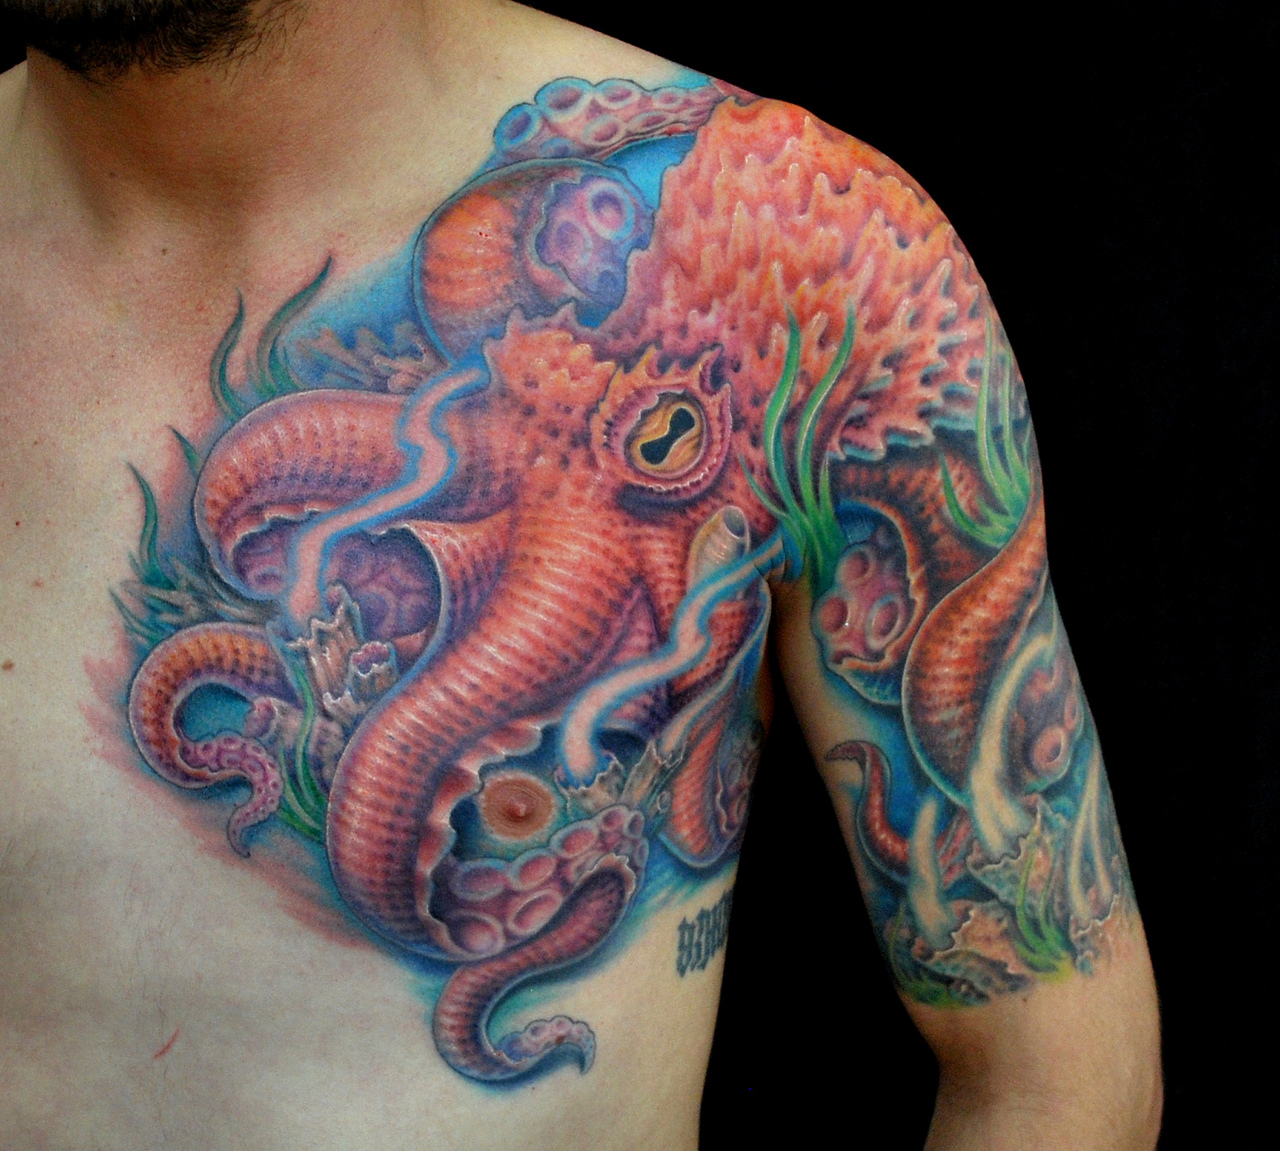 Octopous Tattoo Traditional: Octopus Tattoos Designs, Ideas And Meaning